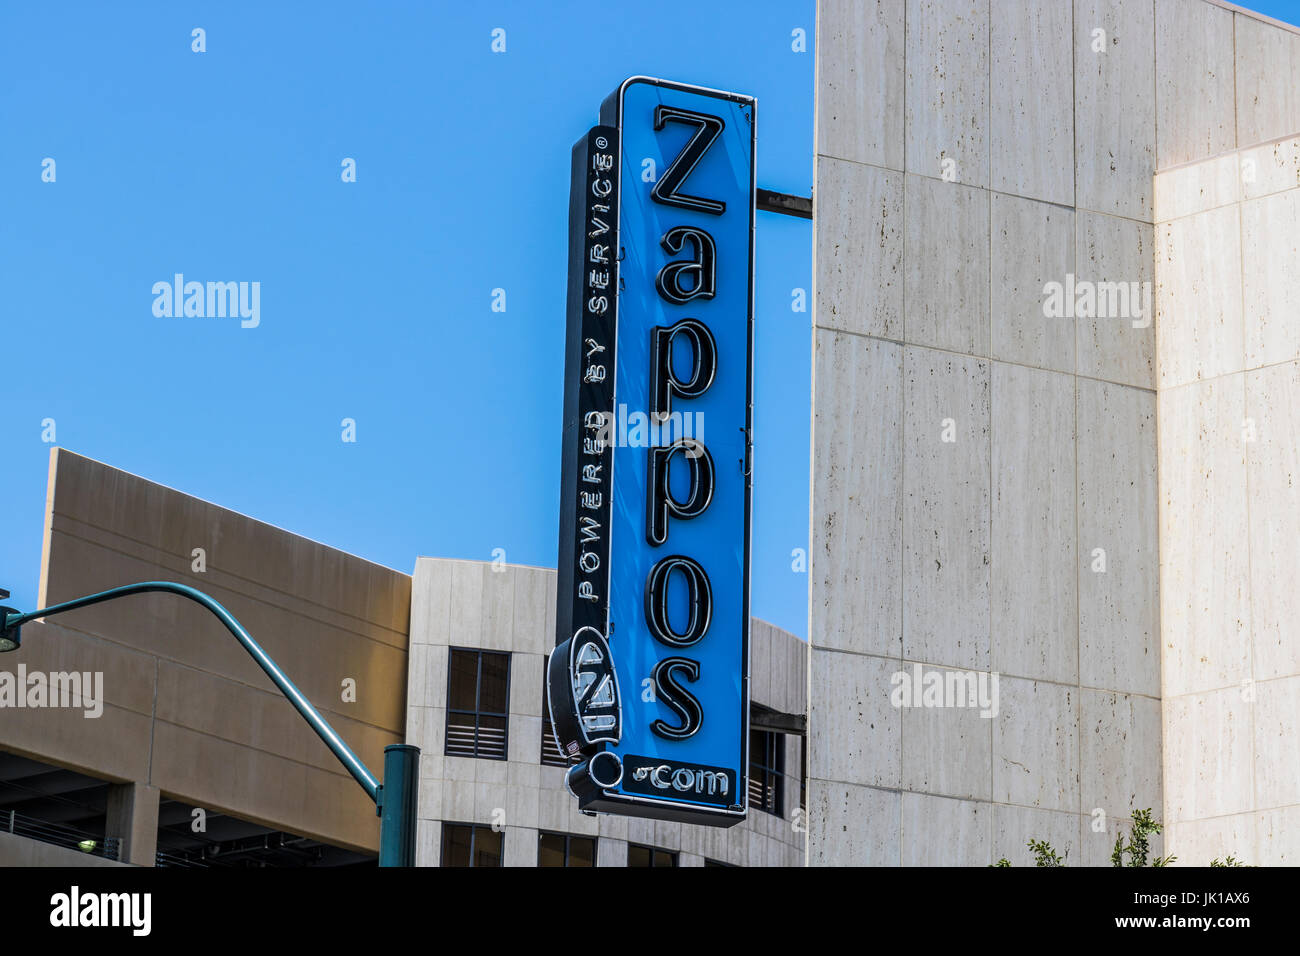 fb9ae88b3 Las Vegas - Circa July 2017: Zappos.com is an online shoe and clothing